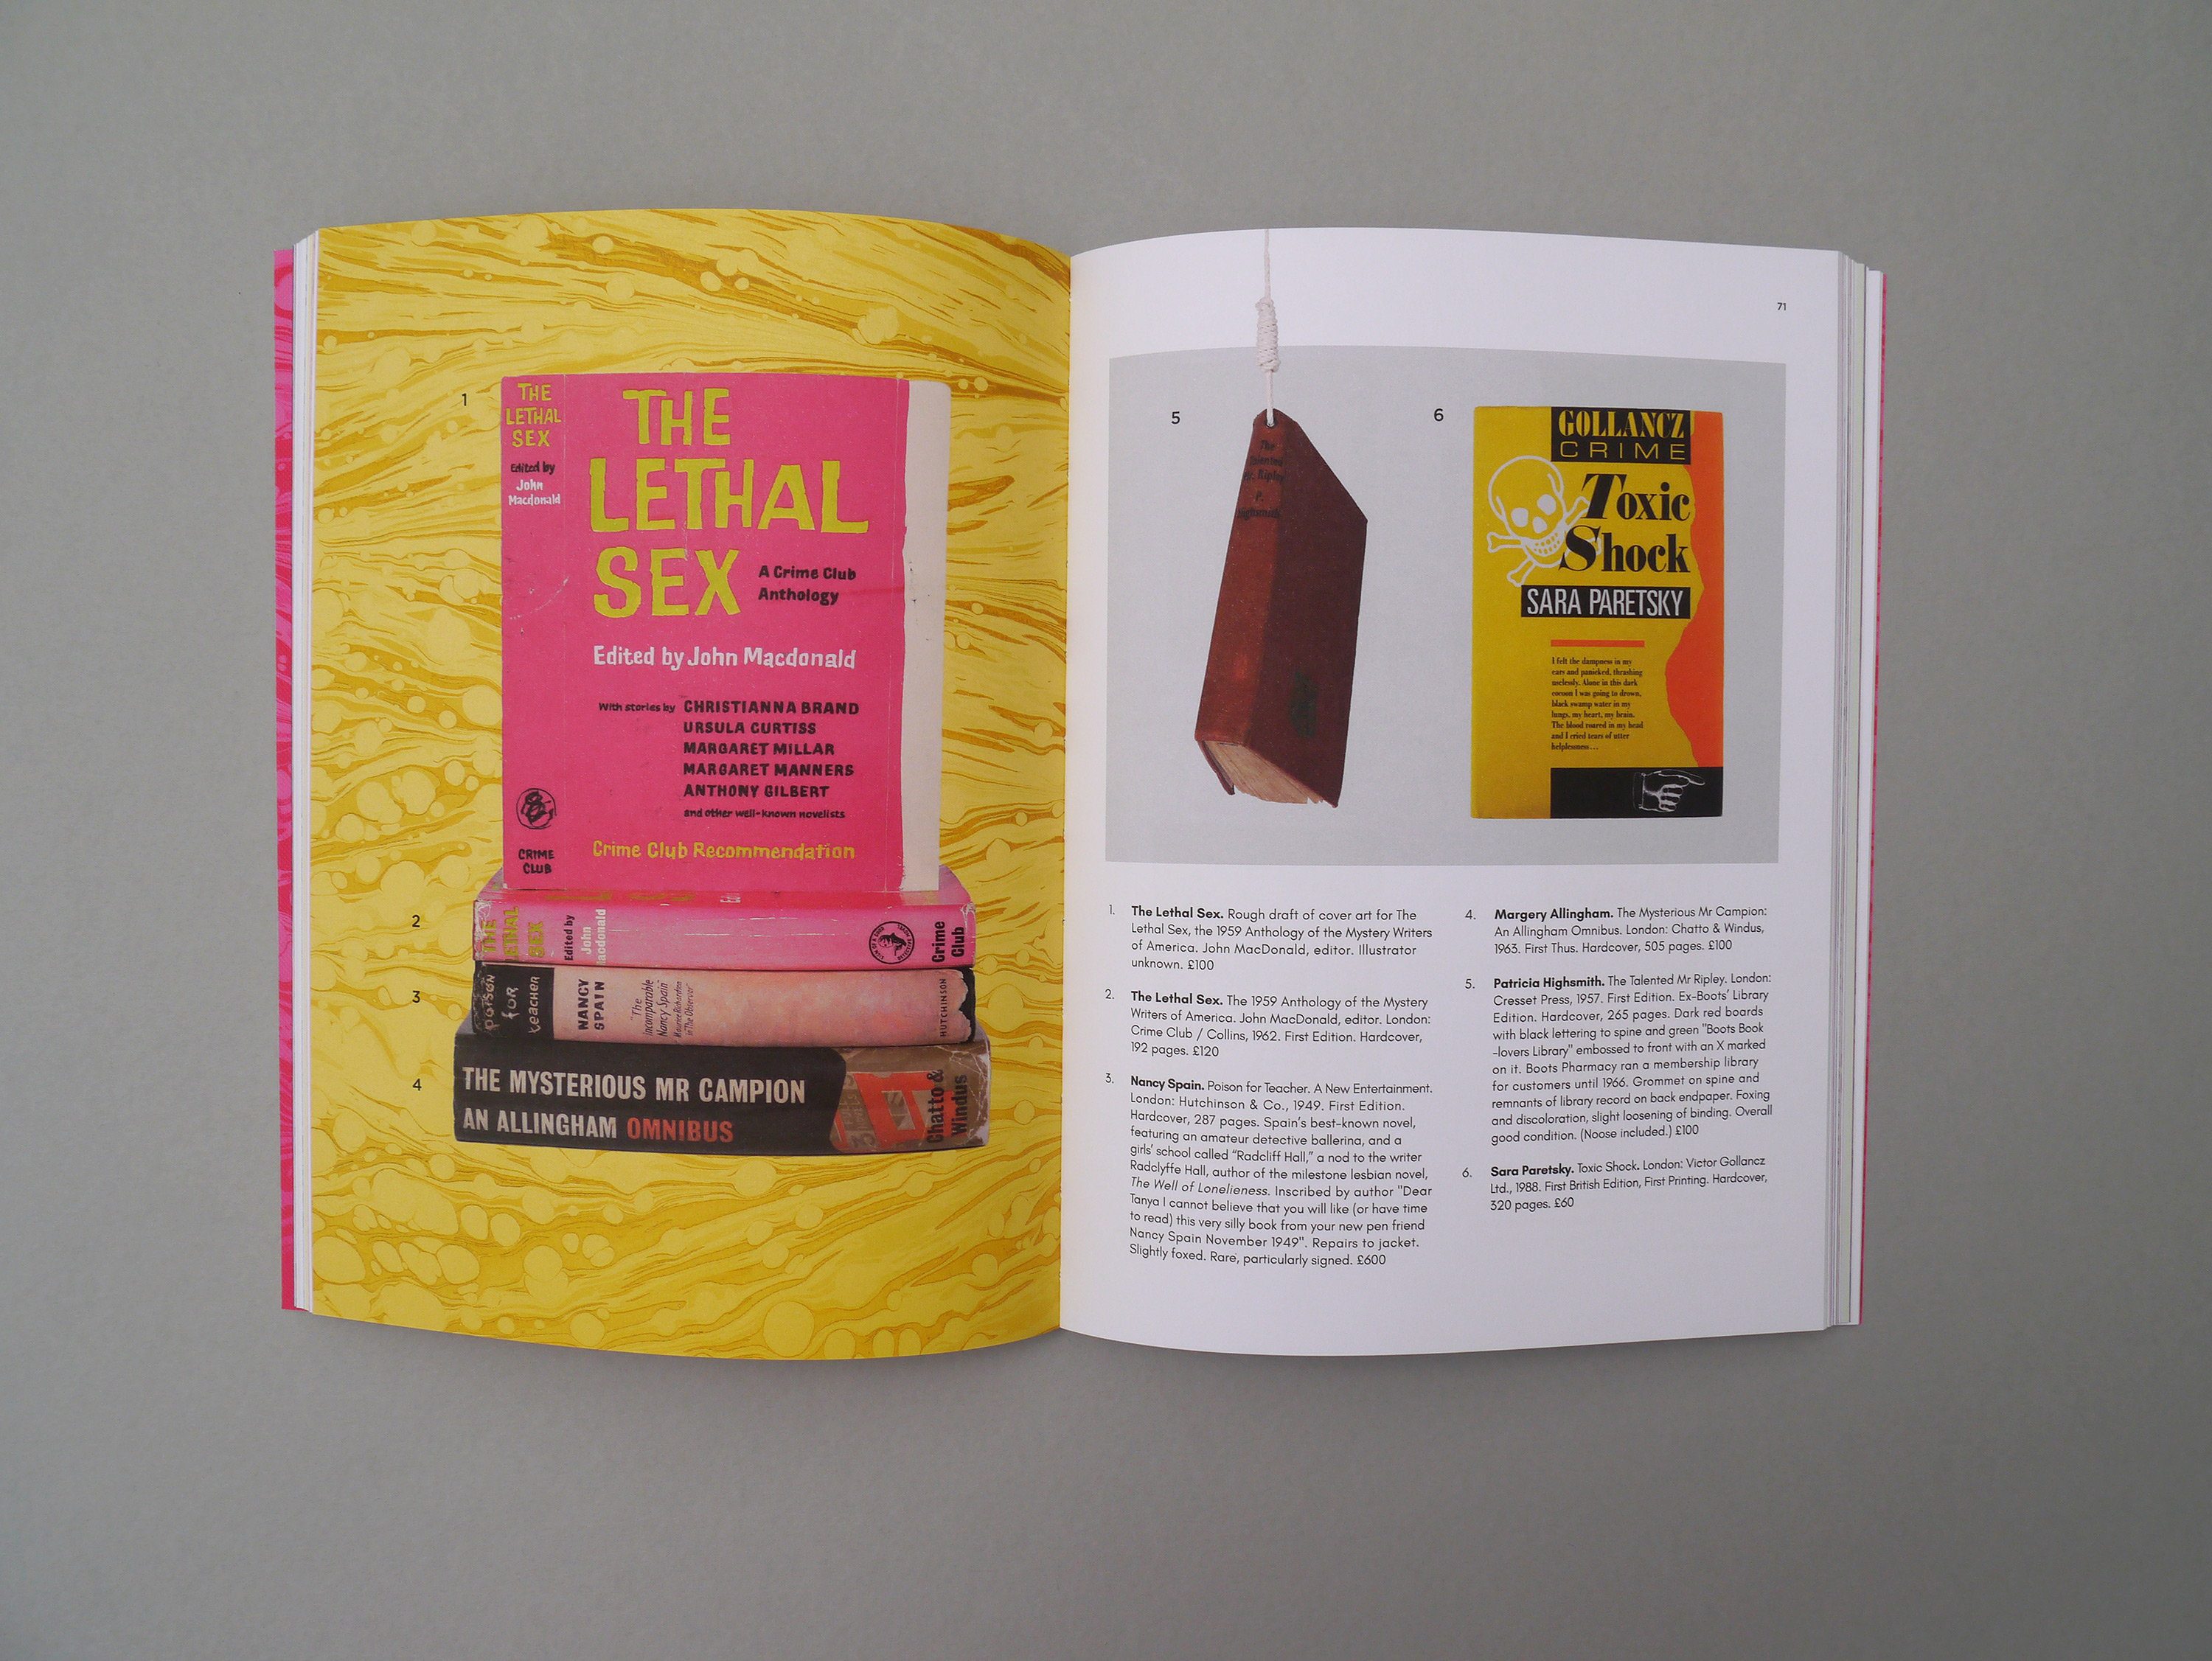 Internal booklet pages mostly bright yellow and pink